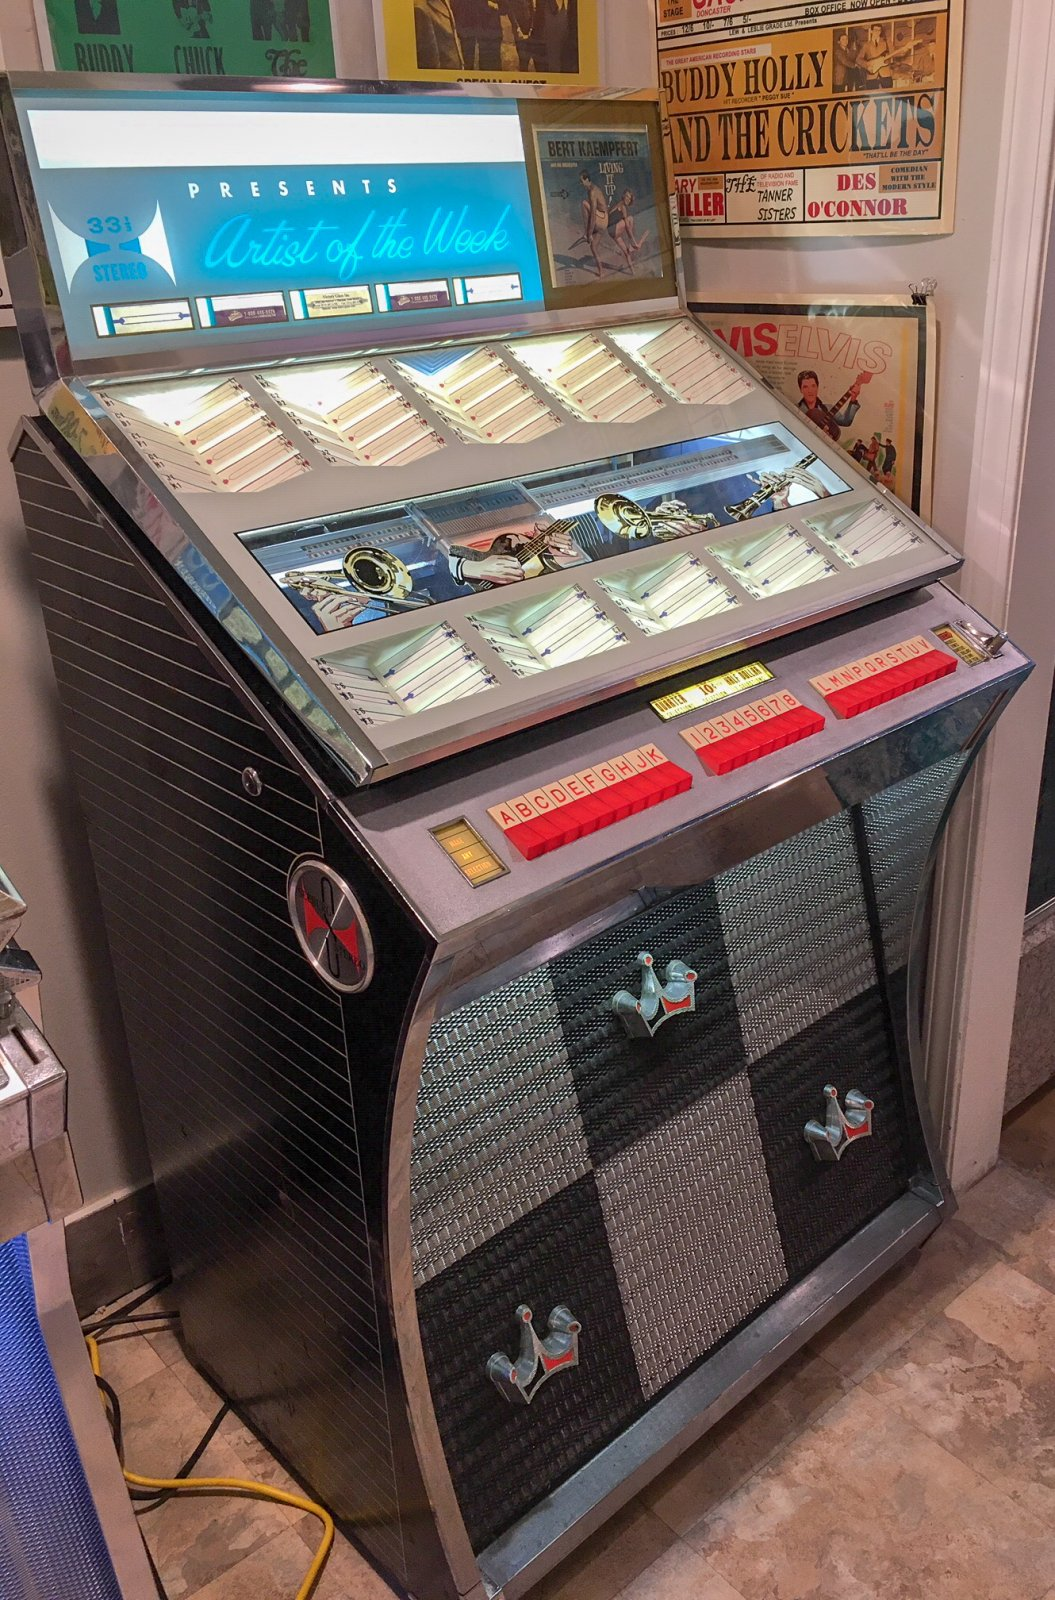 Vintage 1961 Seeburg AY160 Jukebox